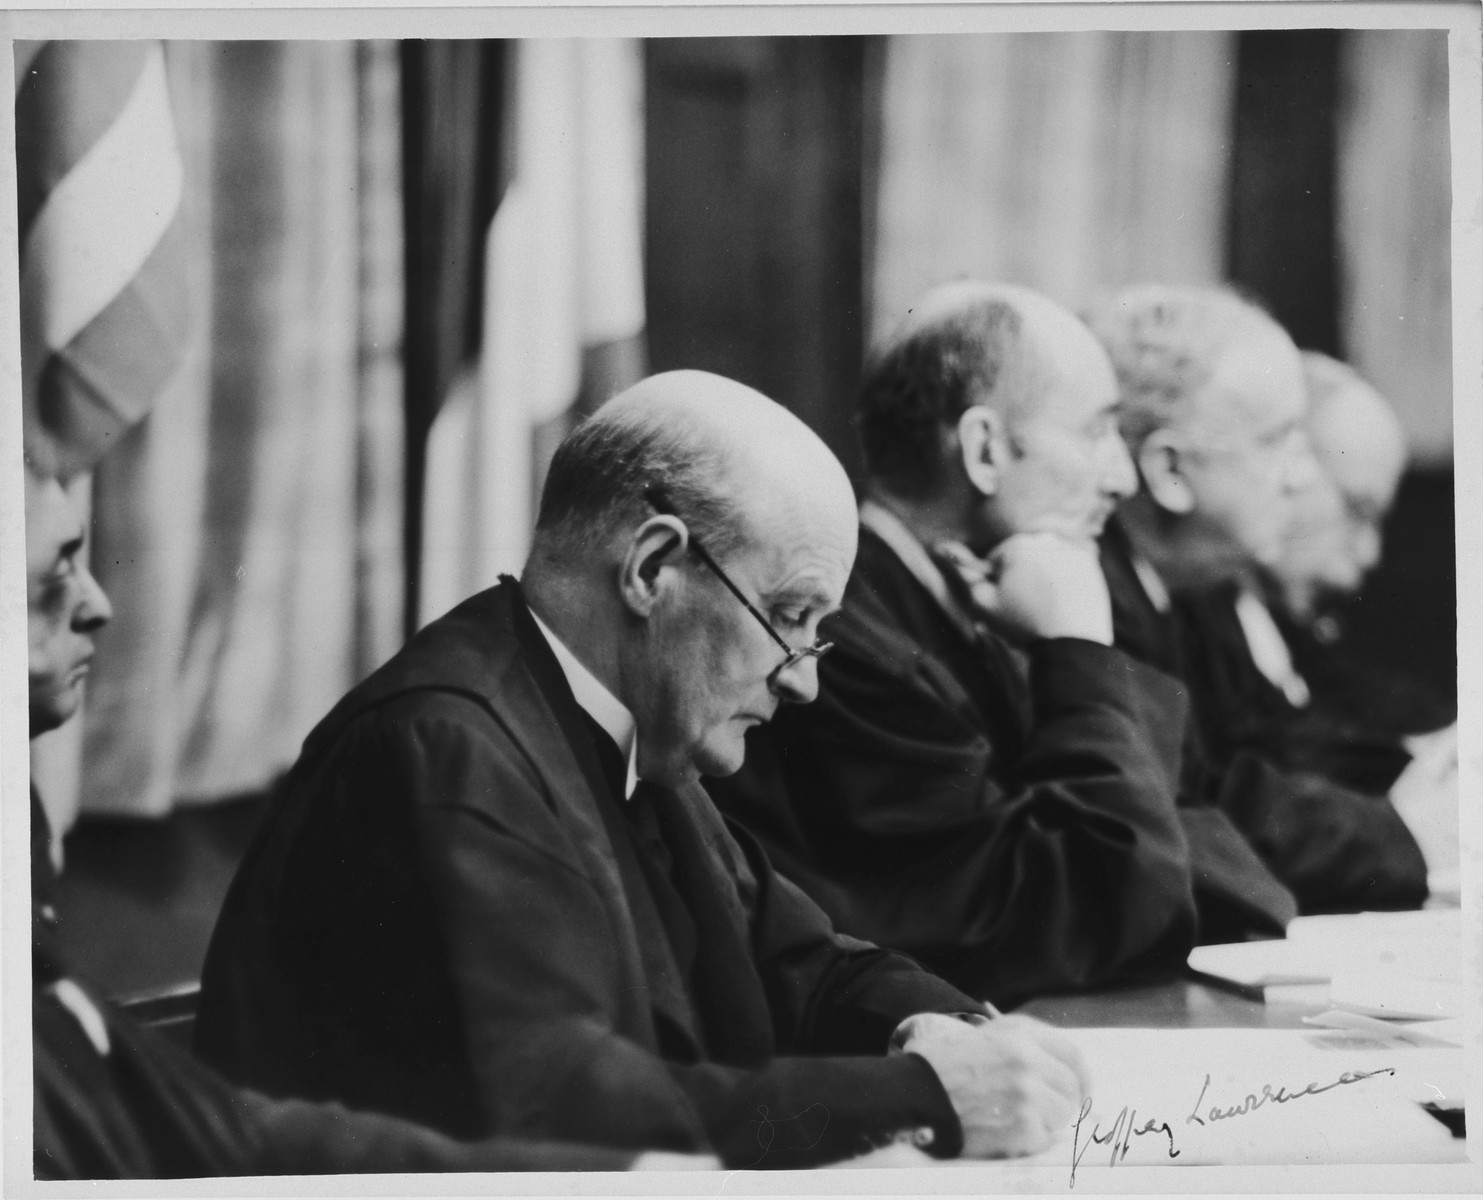 Presiding judge, Sir Geoffrey Lawrence, KC, sits on the bench during a session of the International Military Tribunal trial of war criminals at Nuremberg.  Visible in the background are Judge Francis Biddle, Justice John L. Parker and Justice Donnedieu de Varbes.